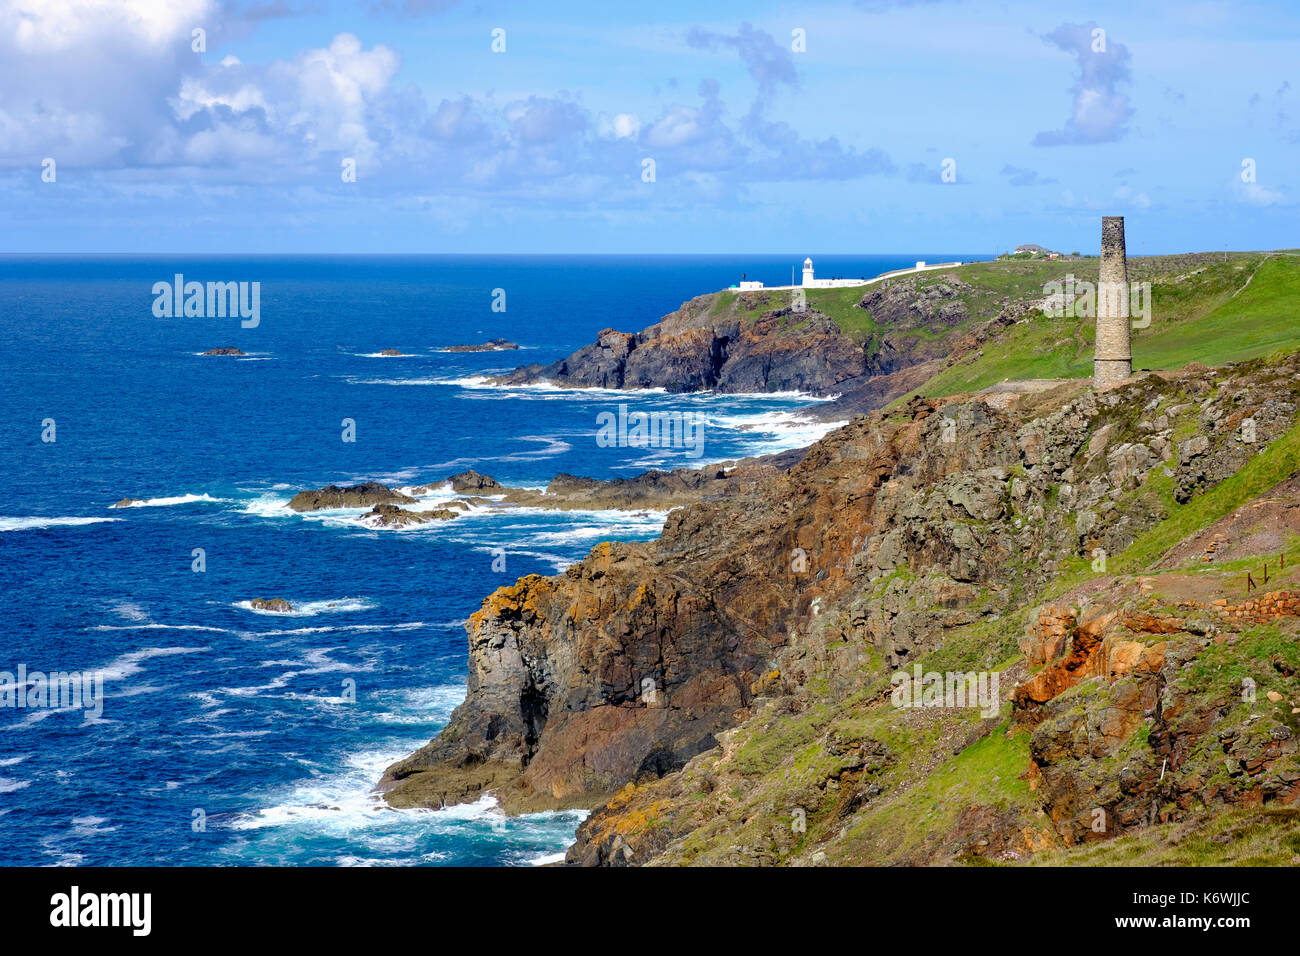 Rocky coast with old chimney from the Levant Mine and Pendeen Lighthouse, St Just in Penwith, Cornwall, England, Great Britain Stock Photo